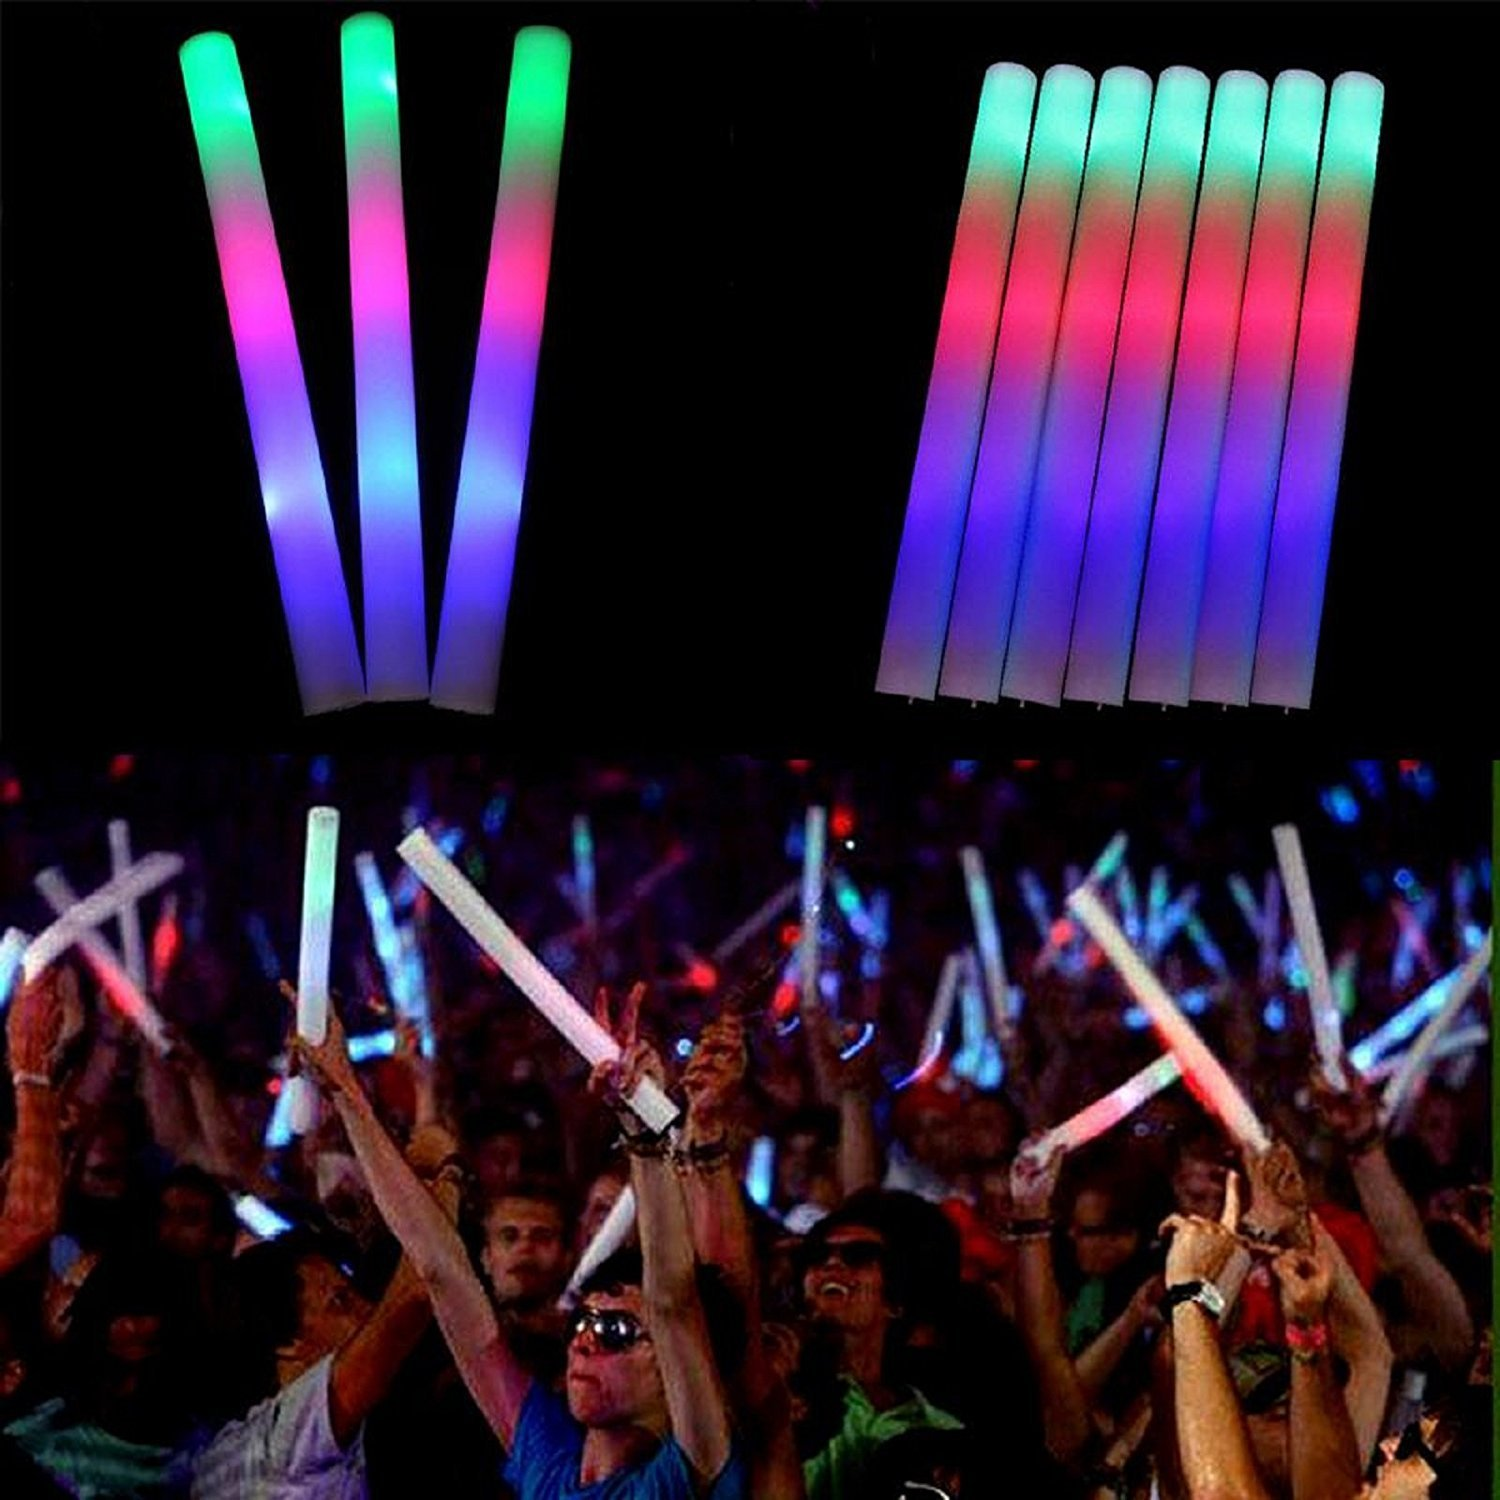 Velocity Toys 3 Modes Multi-Color 12 Pack of 18 Inch Glow LED Foam Sticks Party Flashing Light DJ Wands Concert, Festivals, Birthdays, Supplies, Weddings, Give Aways